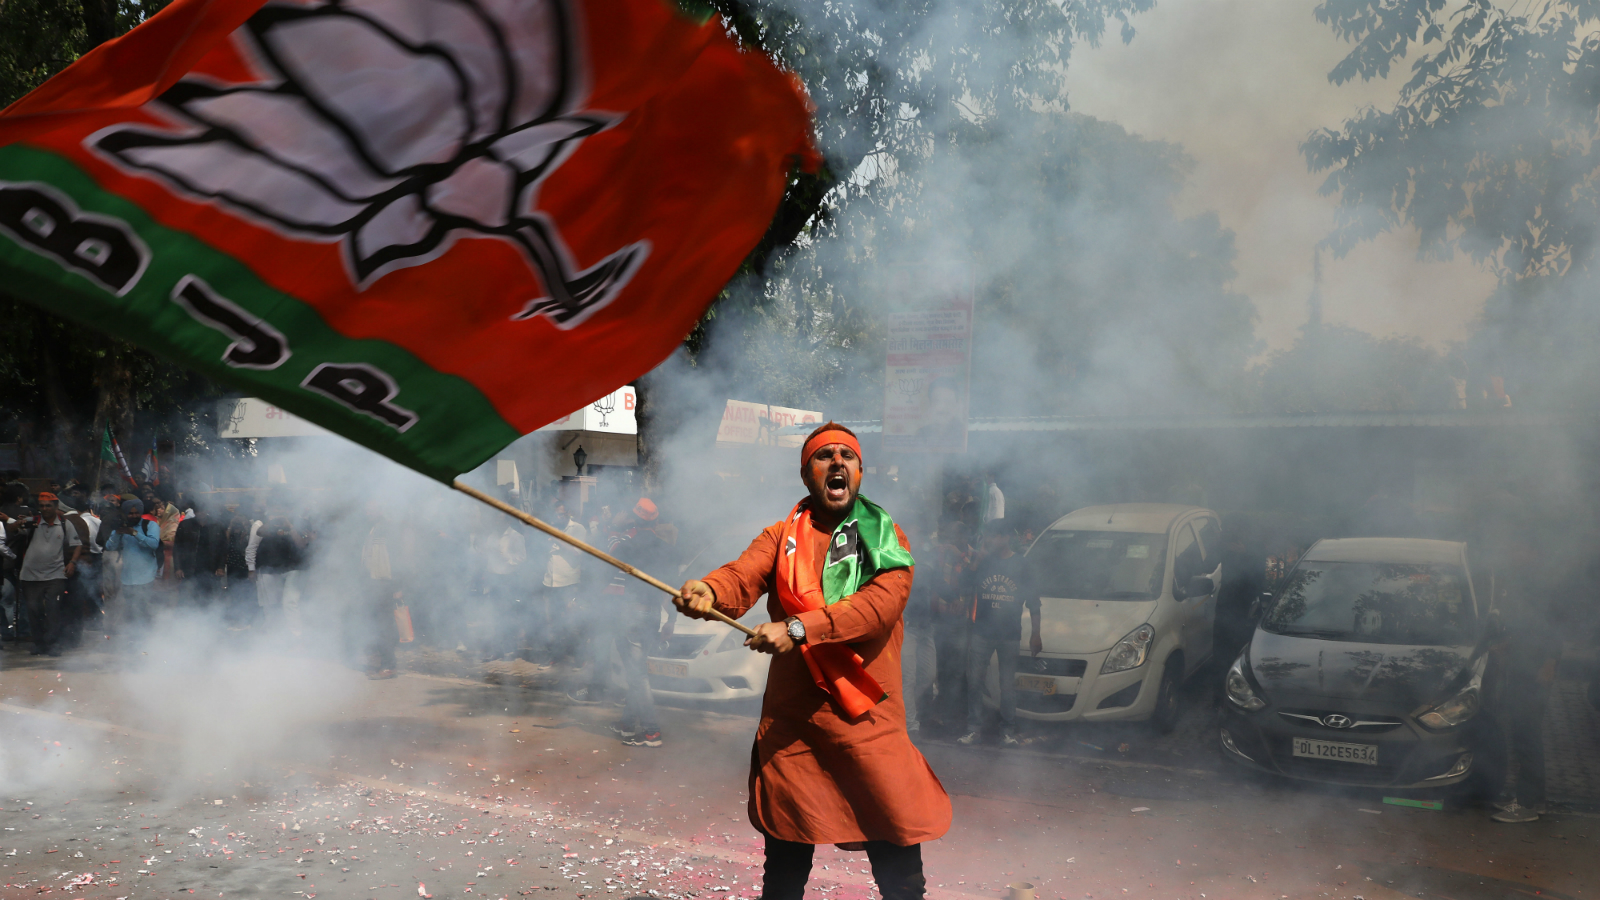 An Indian Bharatiya Janata Party (BJP) supporter celebrates as BJP leads in Uttar Pradesh state in assembly elections BJP in New Delhi, India, 11 March 2017. The trend shows that BJP is leading on most of the seats in Uttar Pradesh Assembly elections.